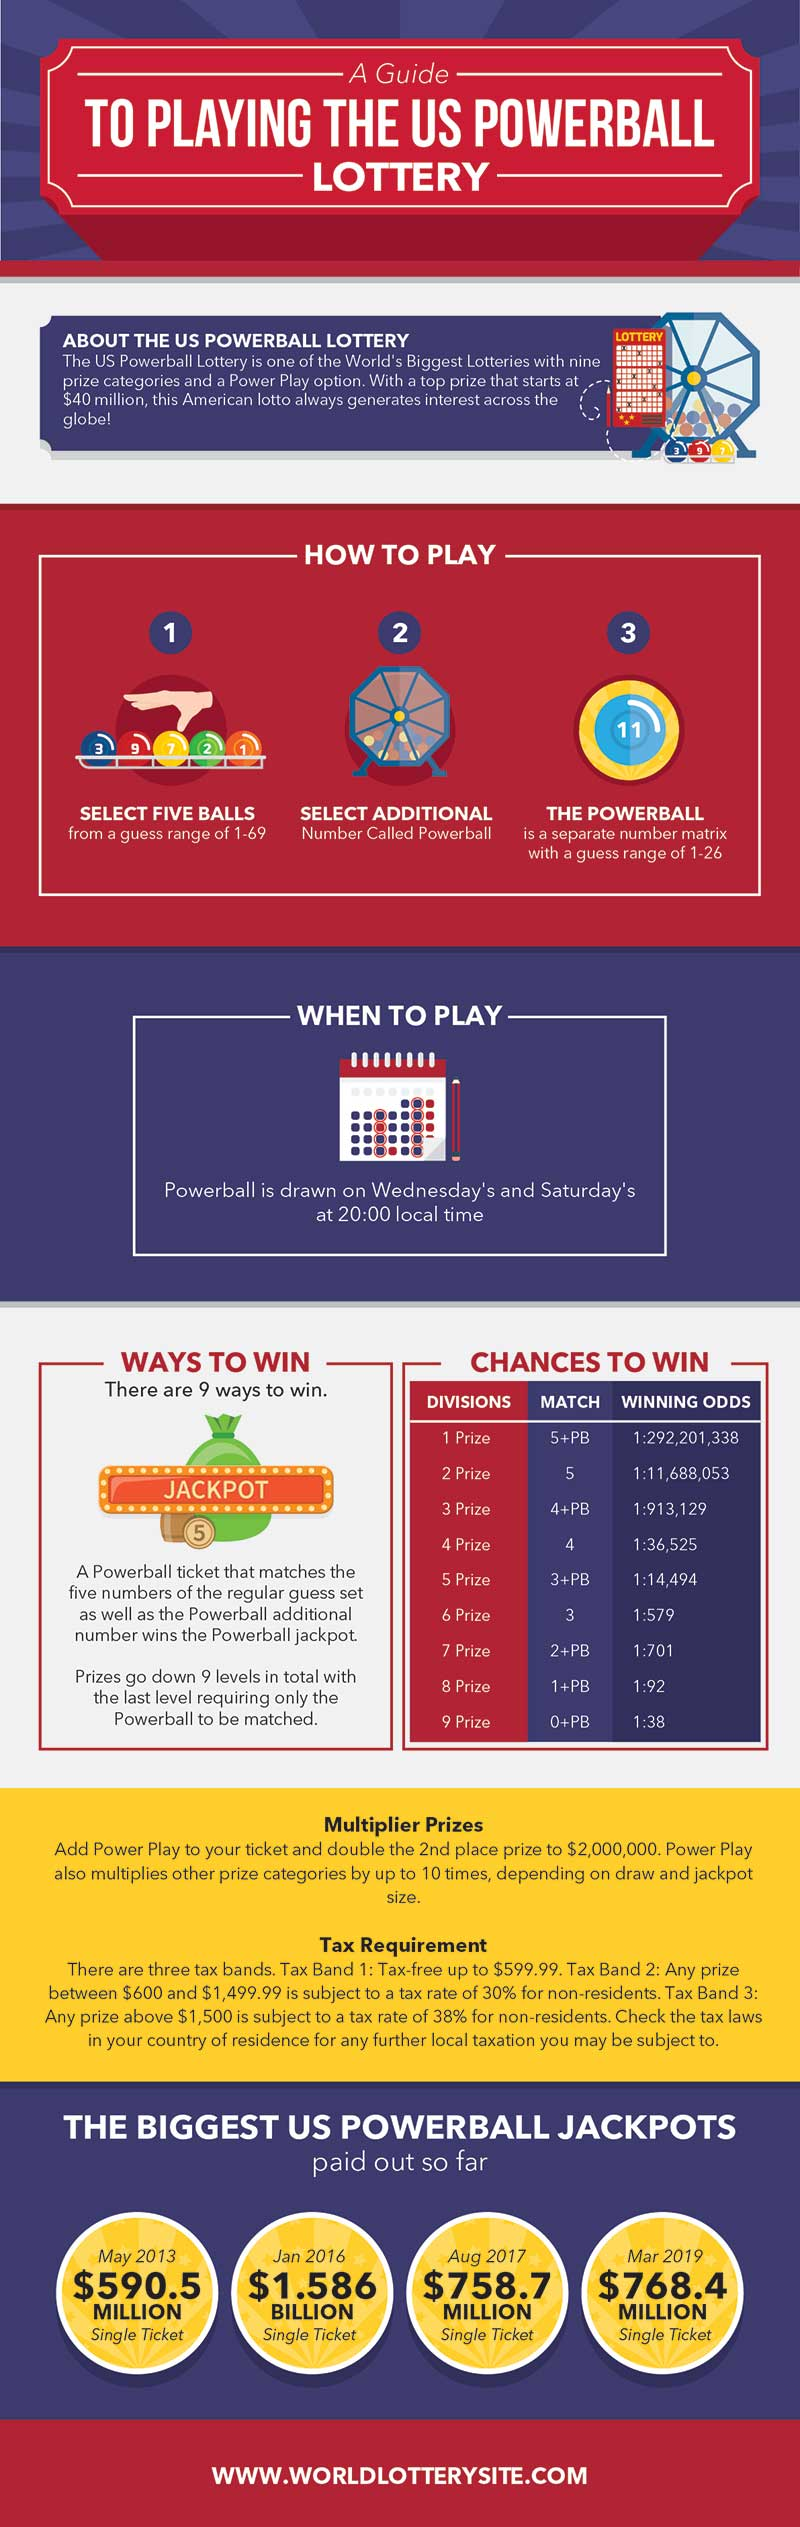 US Powerball Lottery Infographic